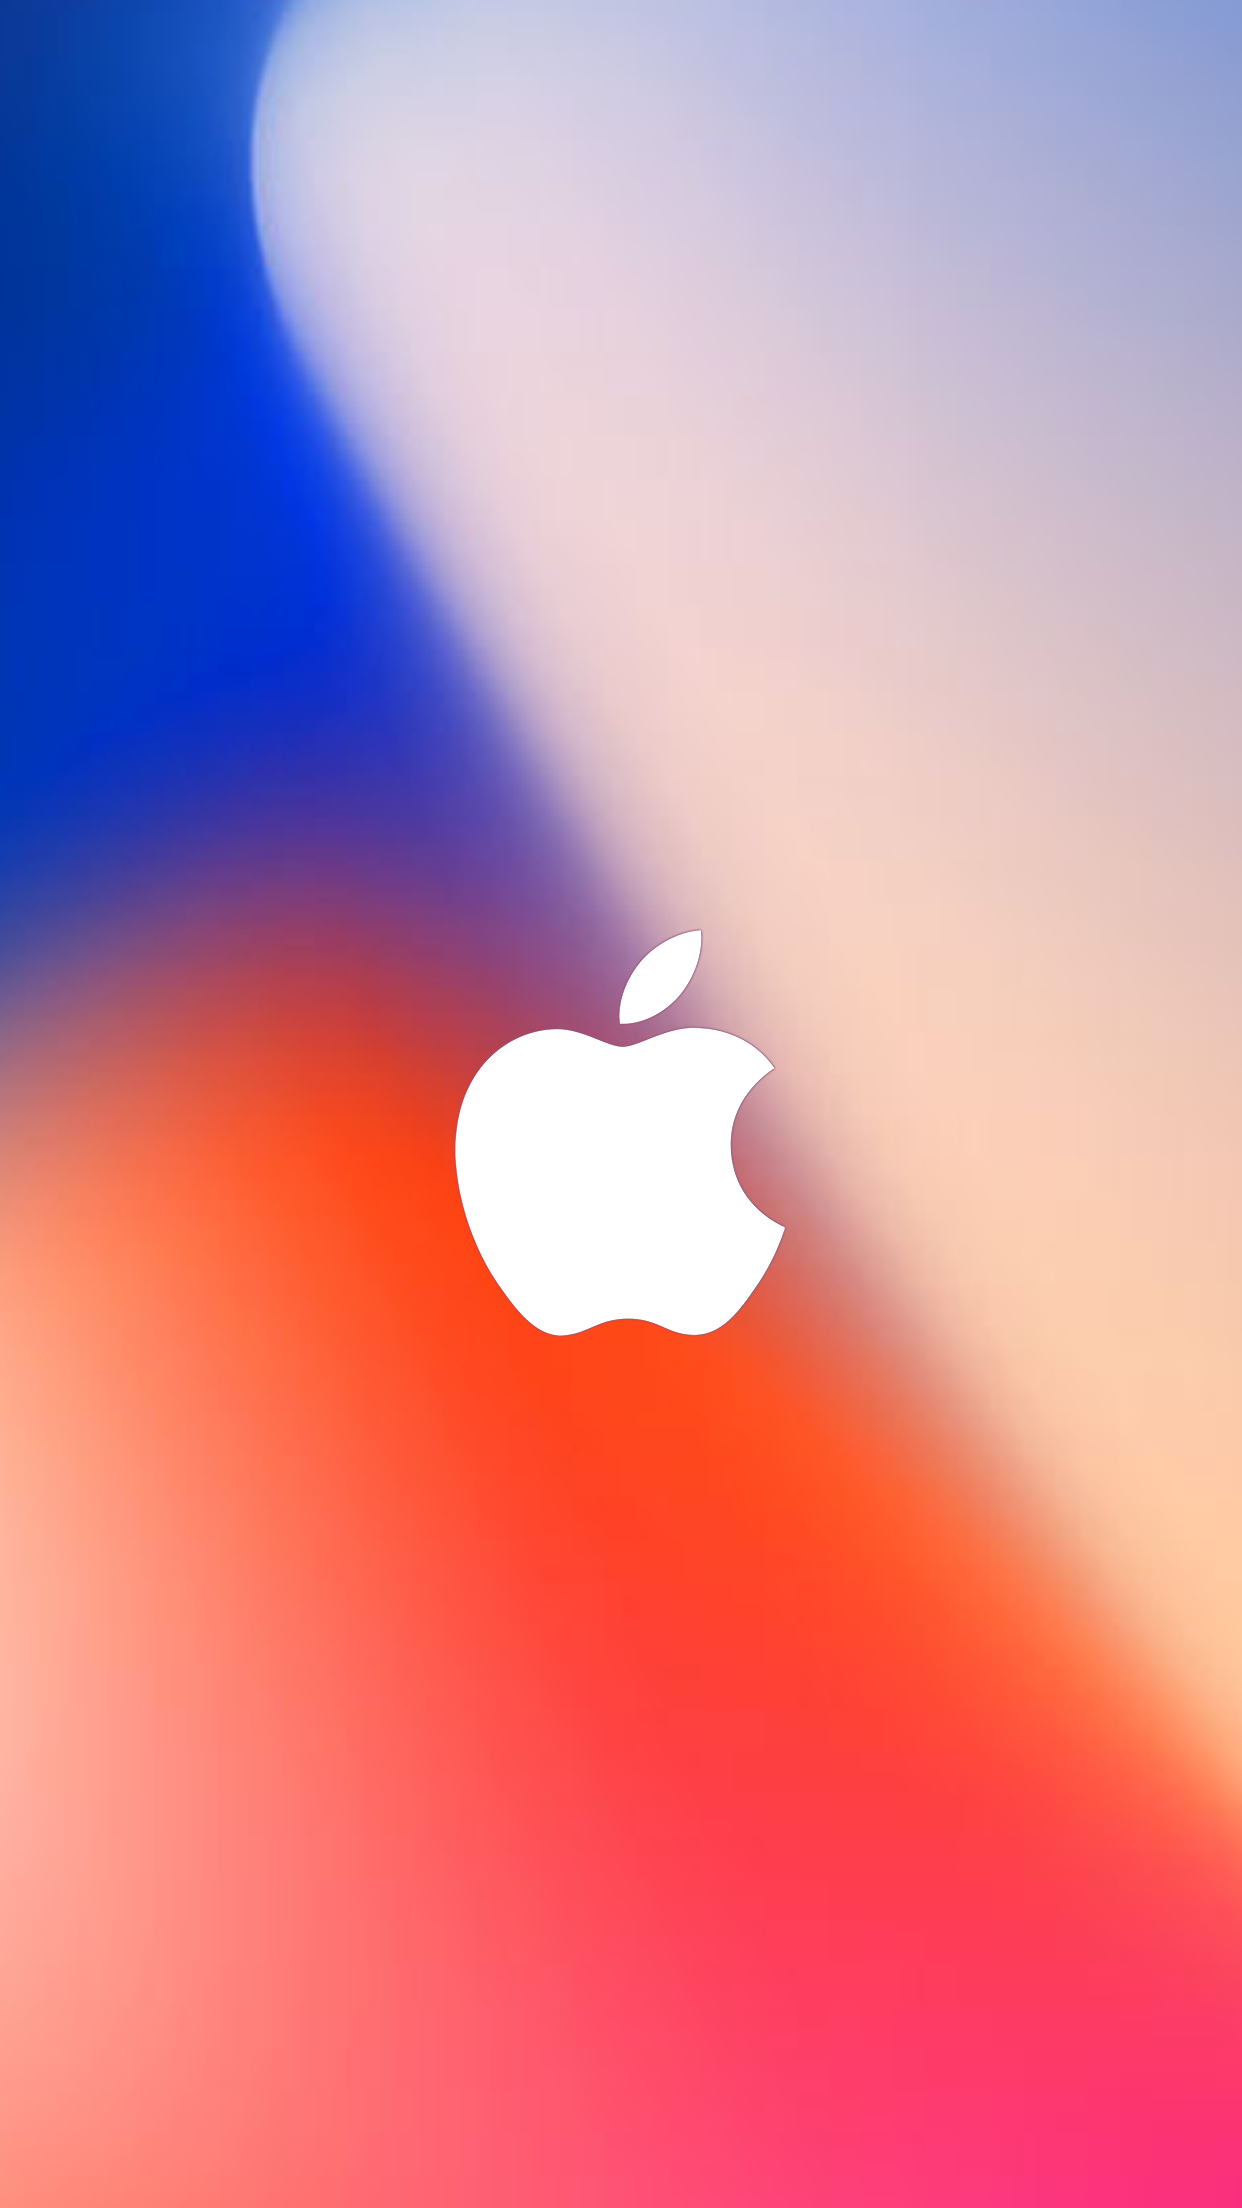 iPhone 8 event wallpapers 1242x2208